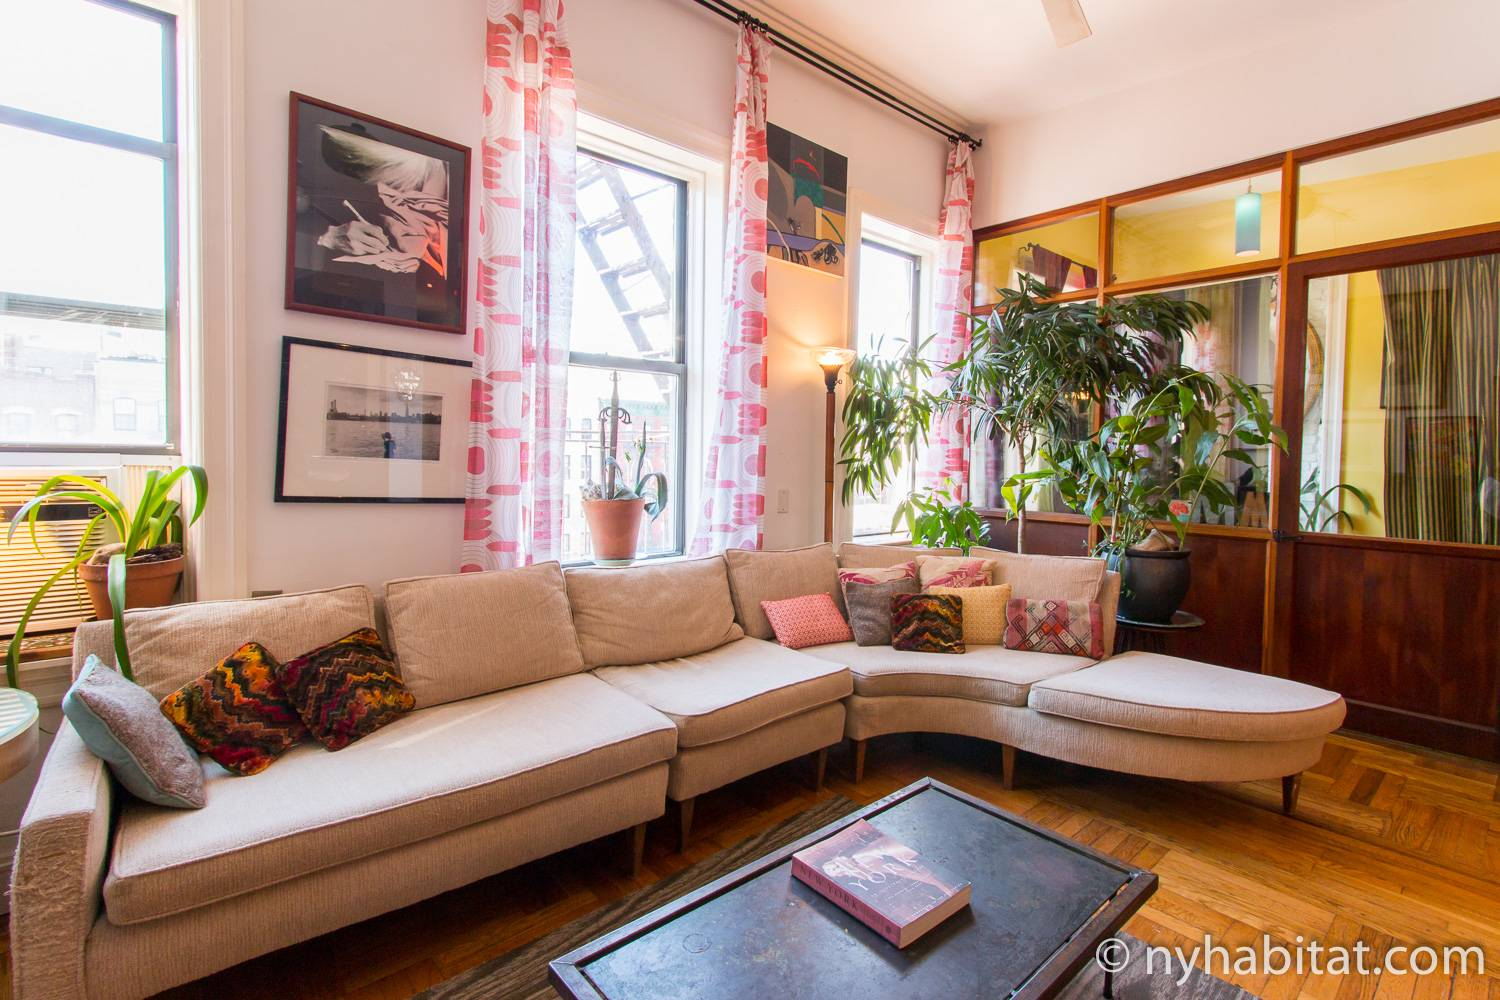 An image of a living room with sectional couch and warm accent tones in a Lower East Side Manhattan rental.